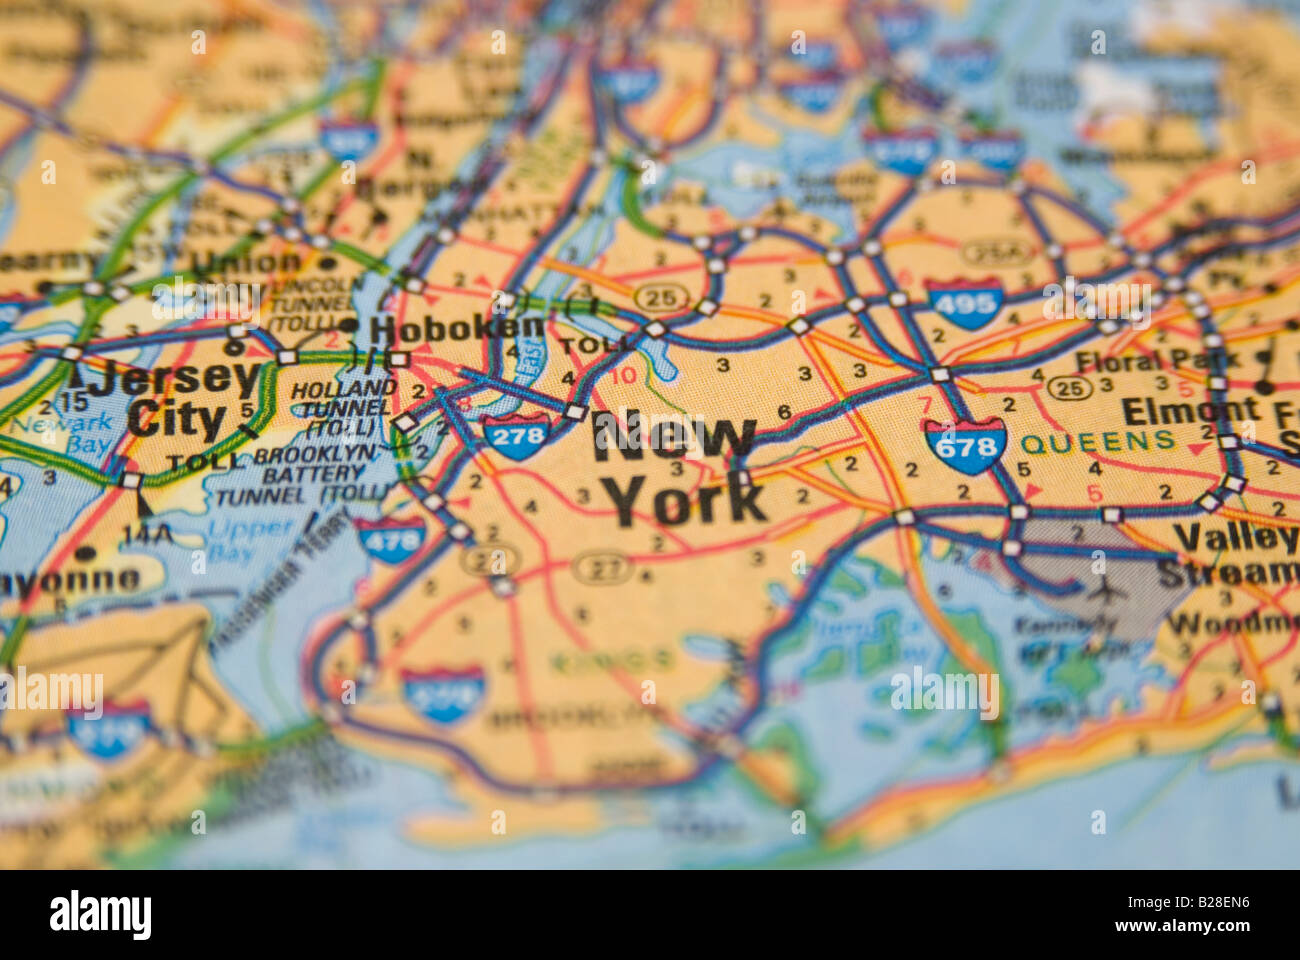 Geographical Map Of New York.New York Road Map Stock Photo 18626866 Alamy